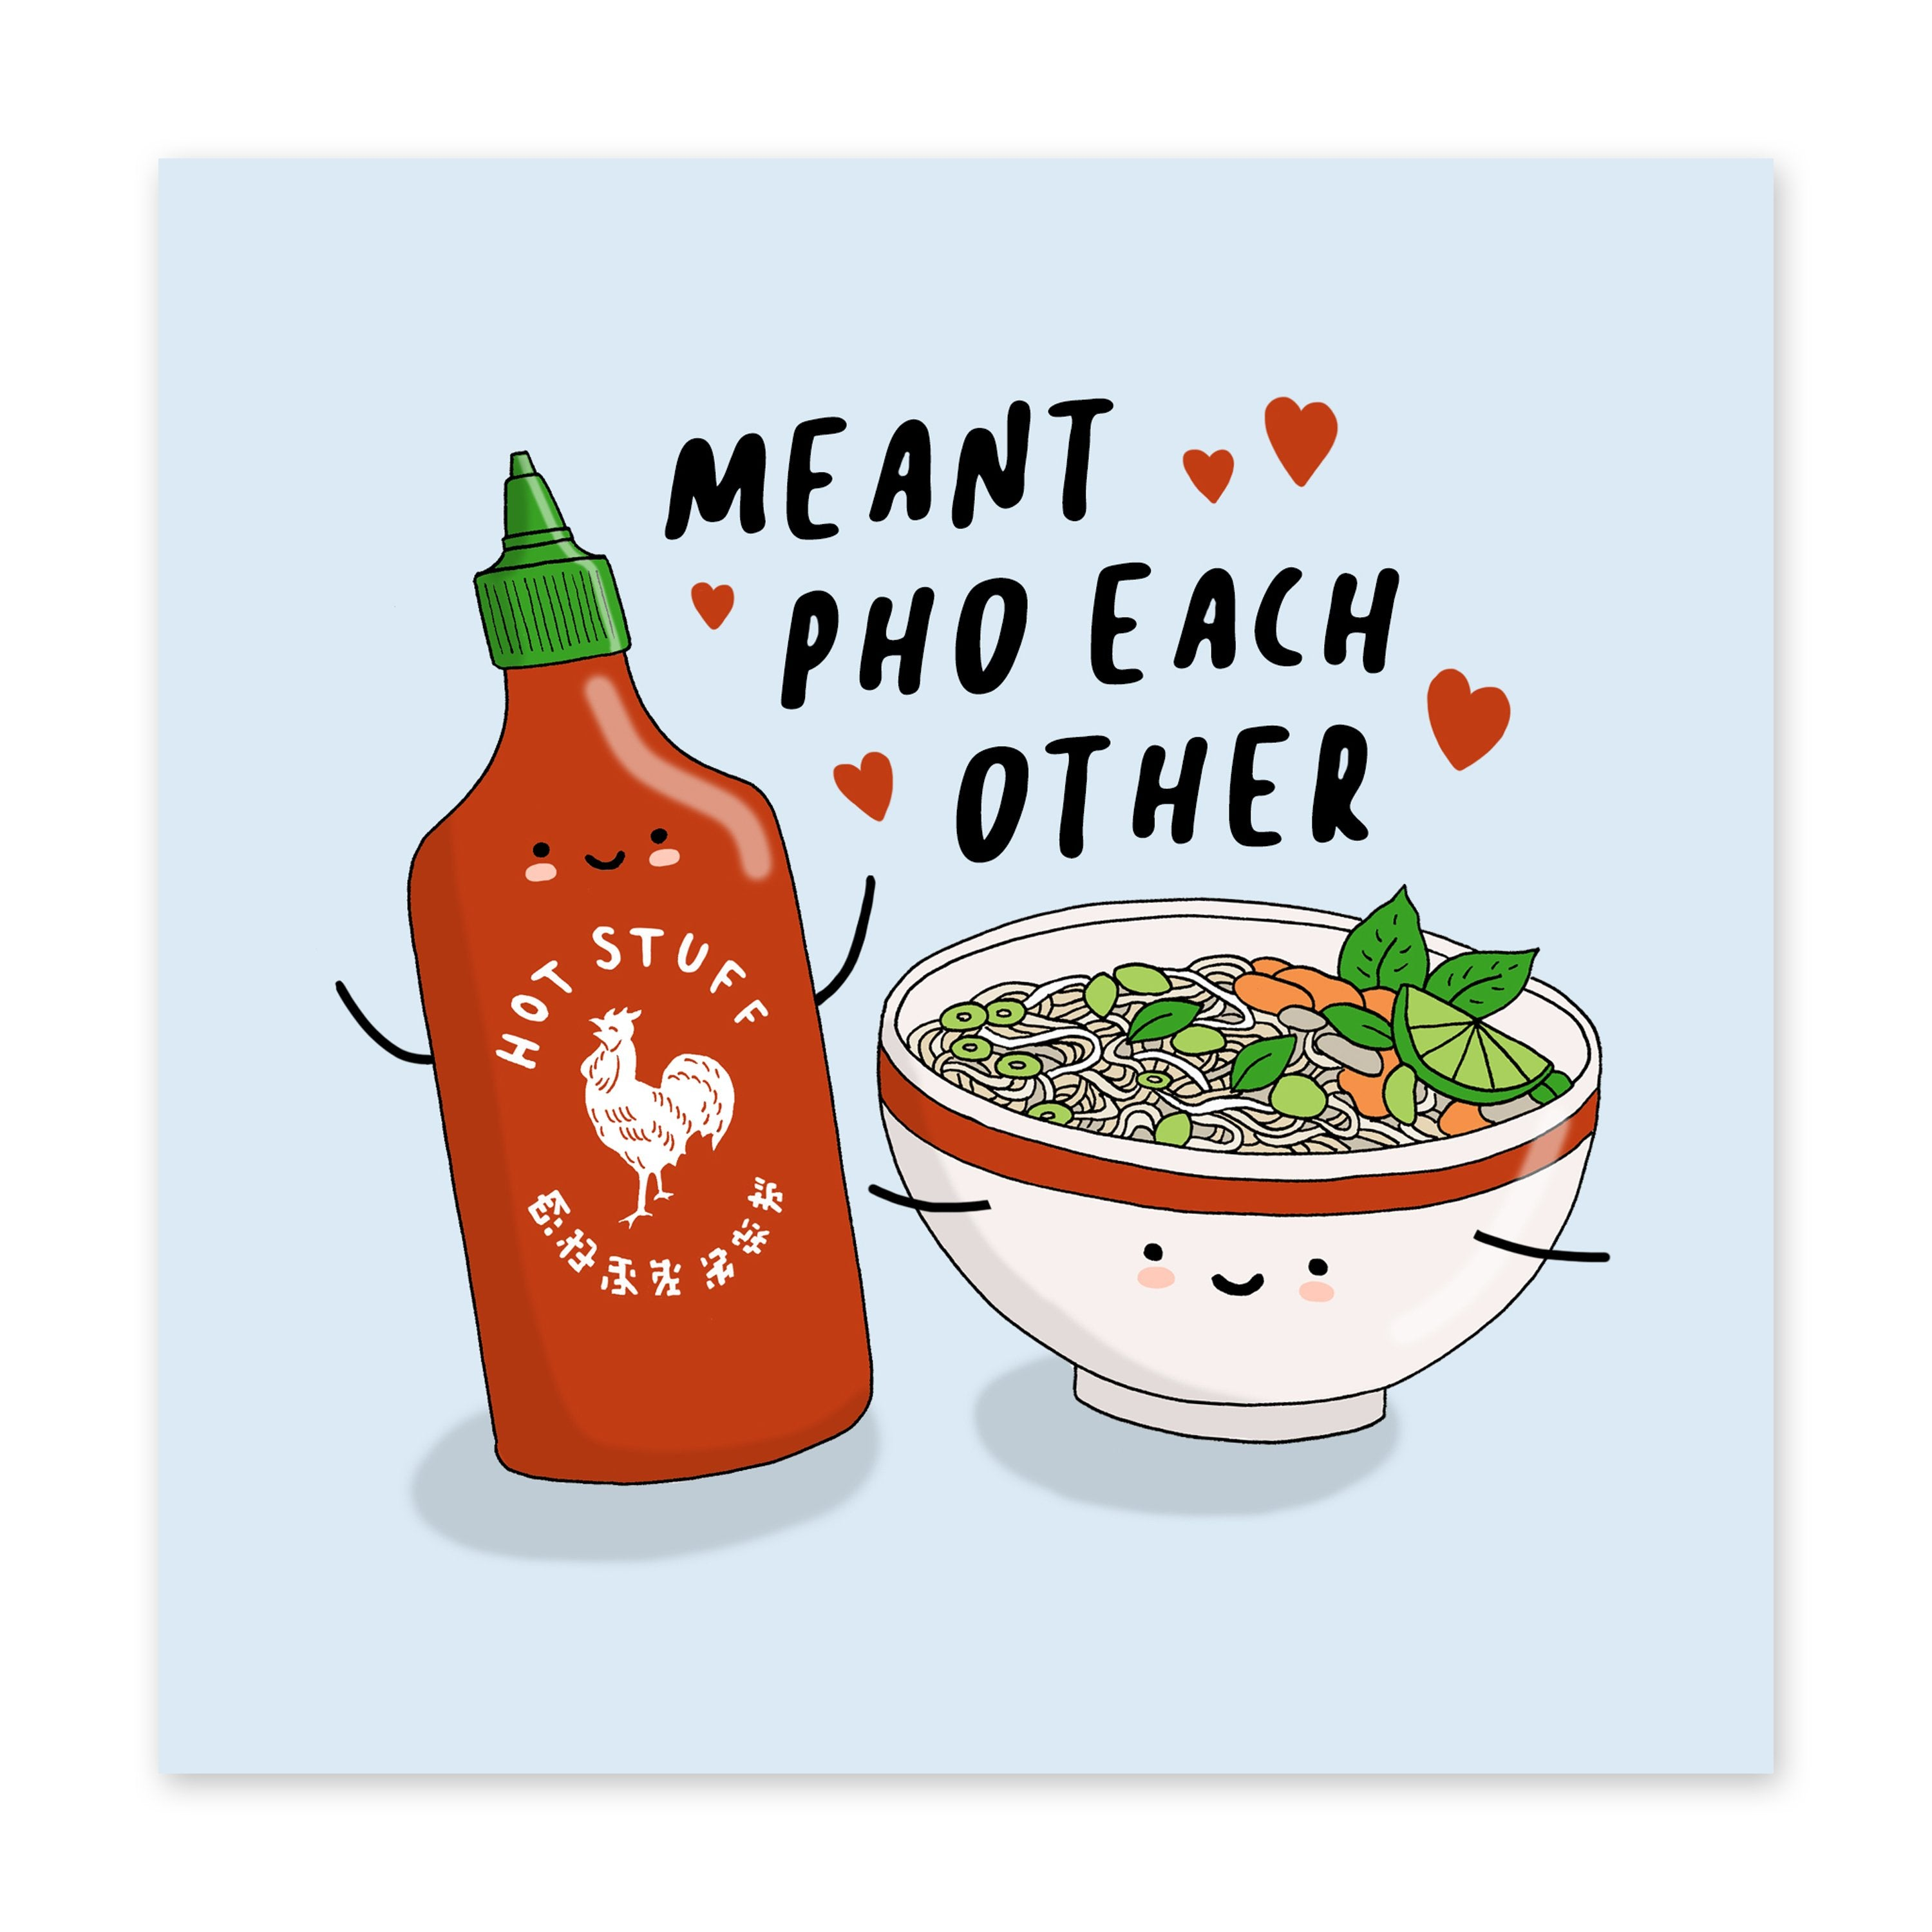 Meant Pho Eachother Love Card - US